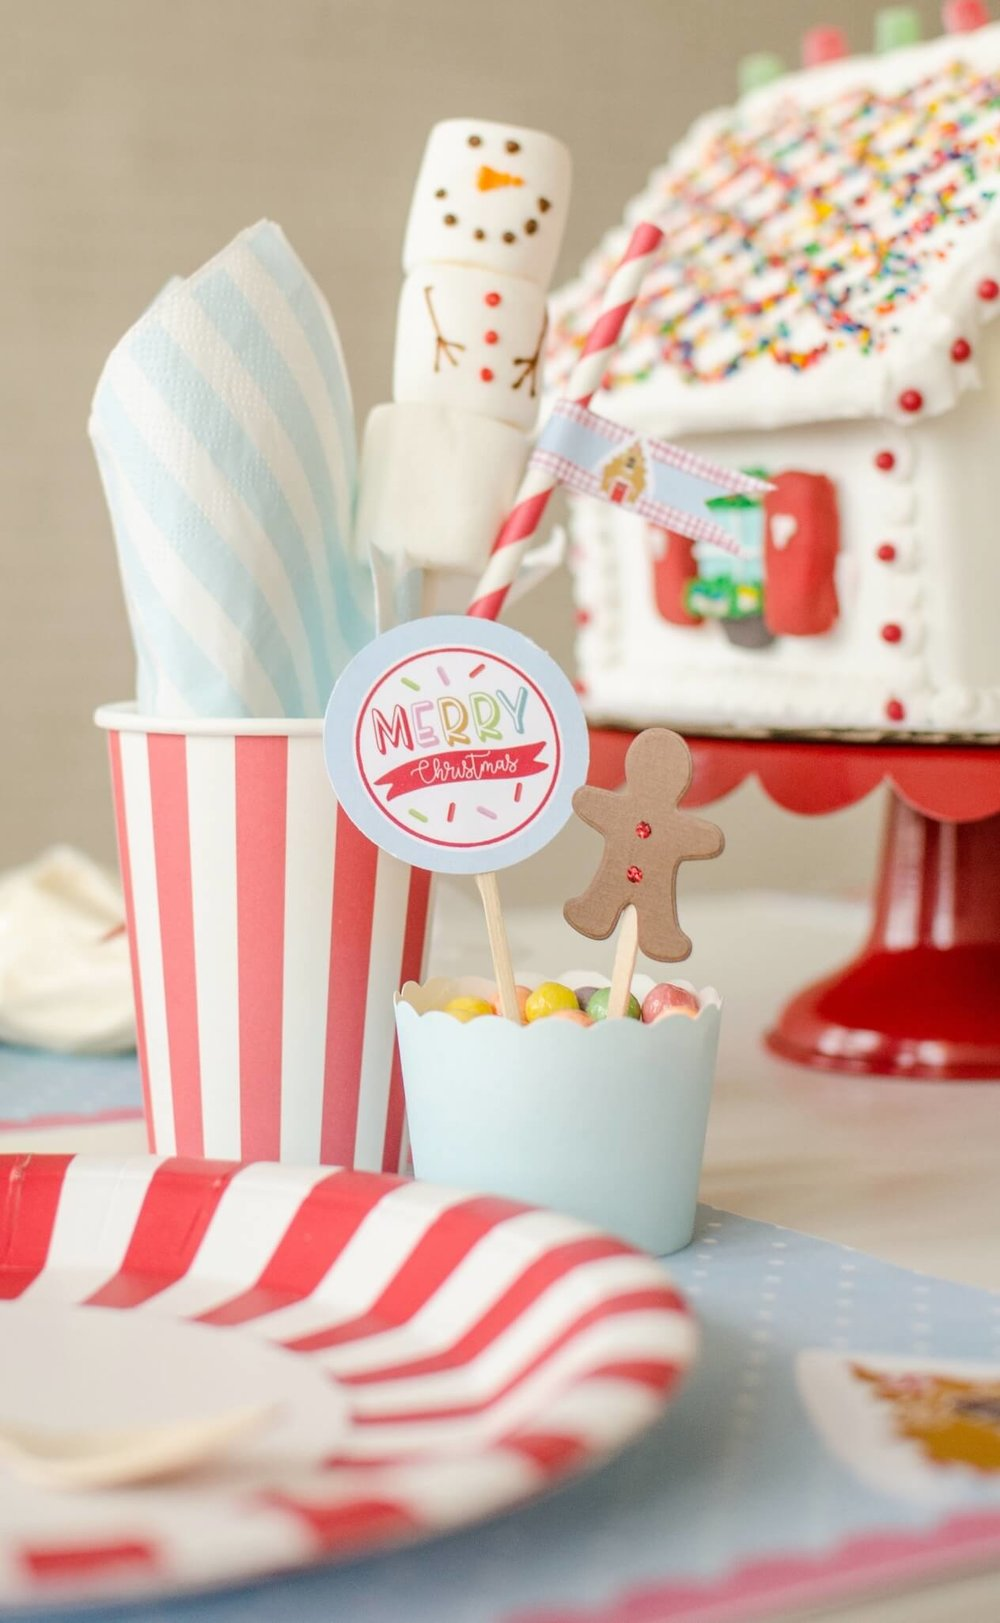 Get ready to decorate your gingerbread cookies!  Here is what you all need to purchase including party printables, paper goods and a cute winter treat for kids